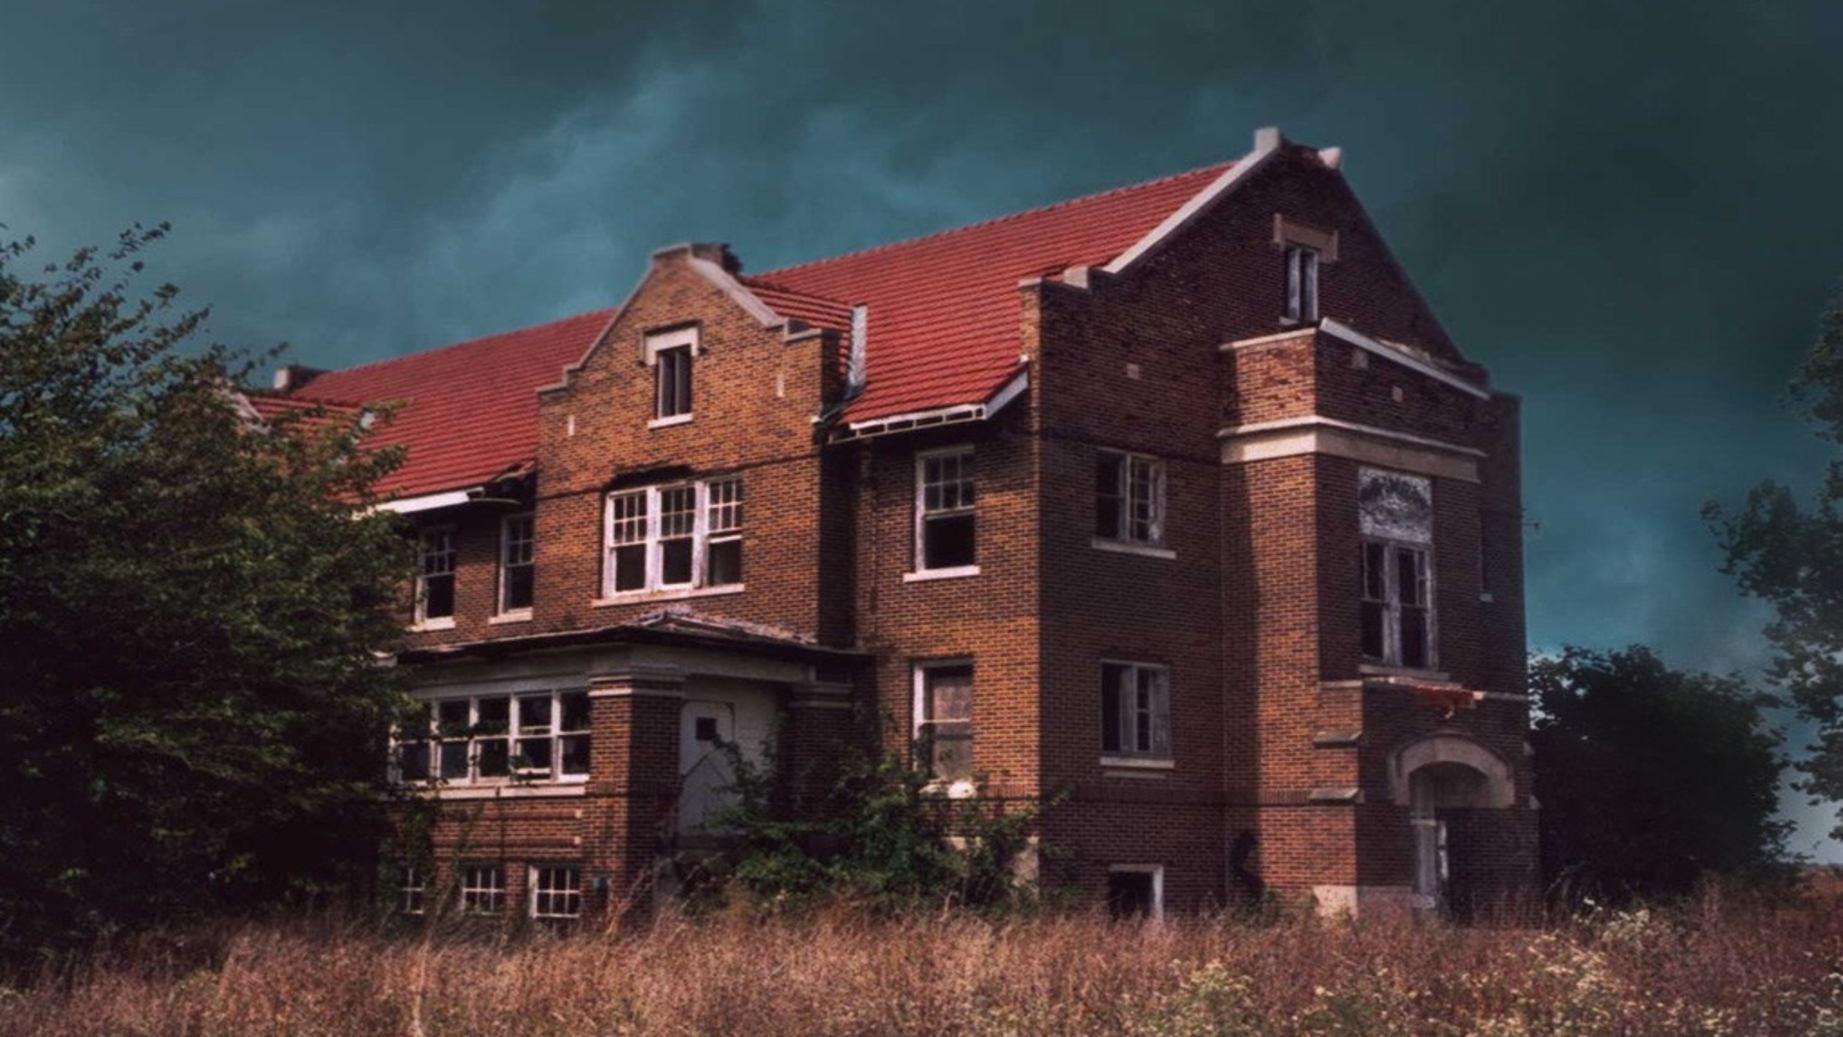 Ready To Investigate This Former Poor Farm?